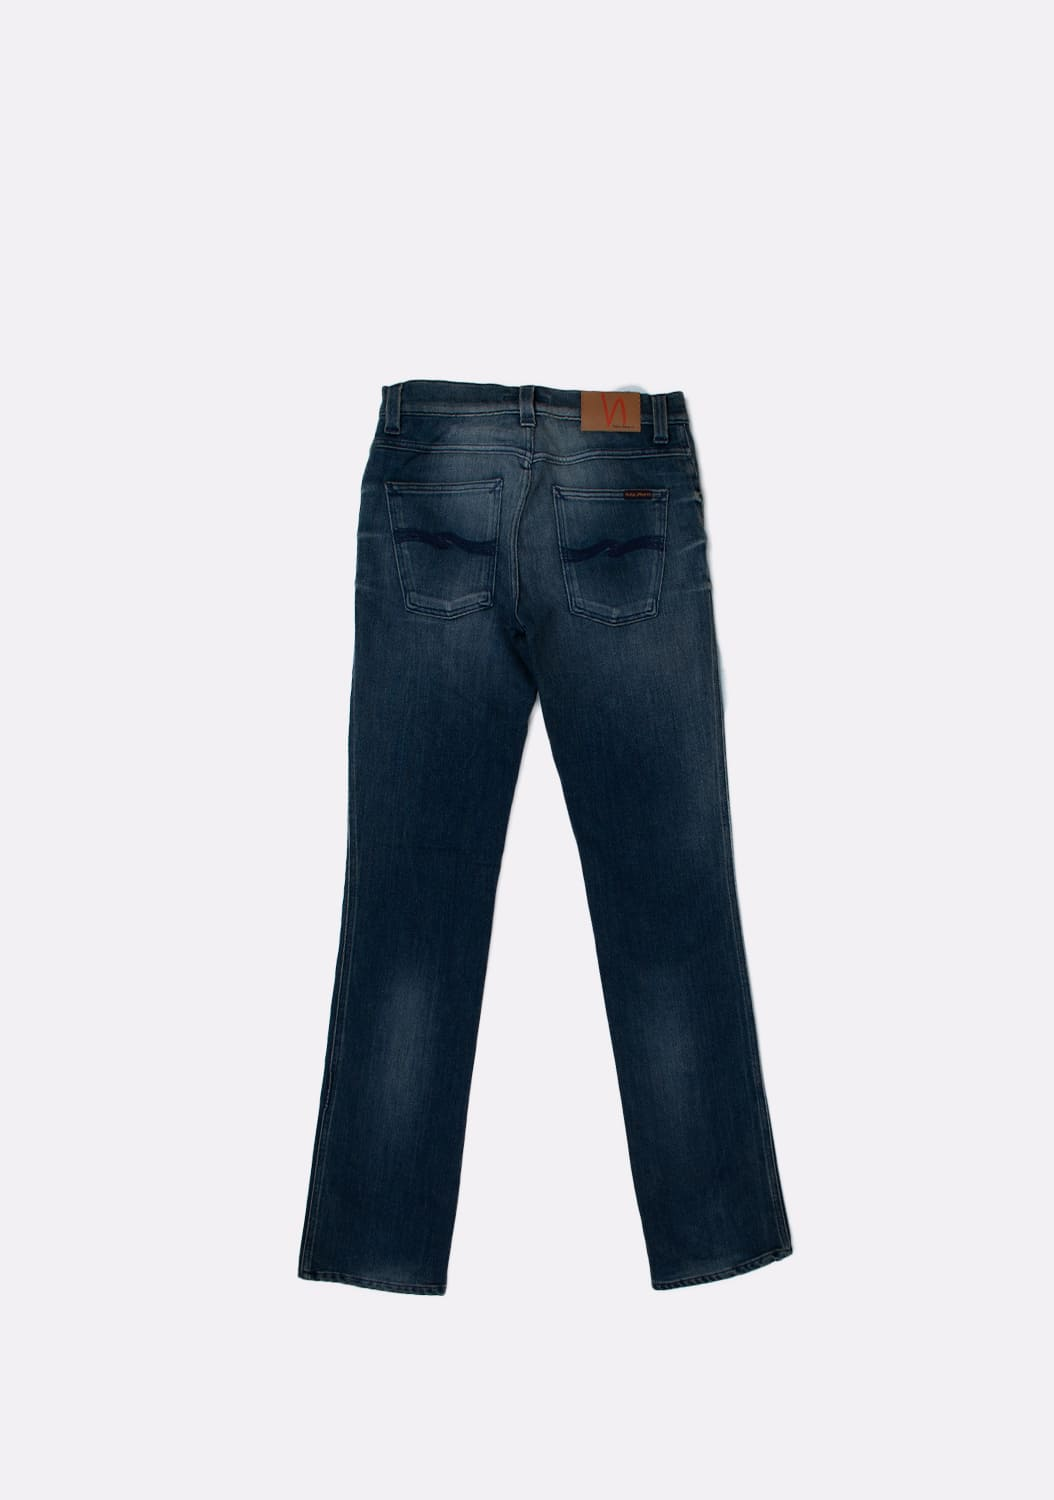 Nudie-Jeans-Slim-Jim-Scraped-melynai-pilki-Straight-dzinsai-dydis-32-34 (4)